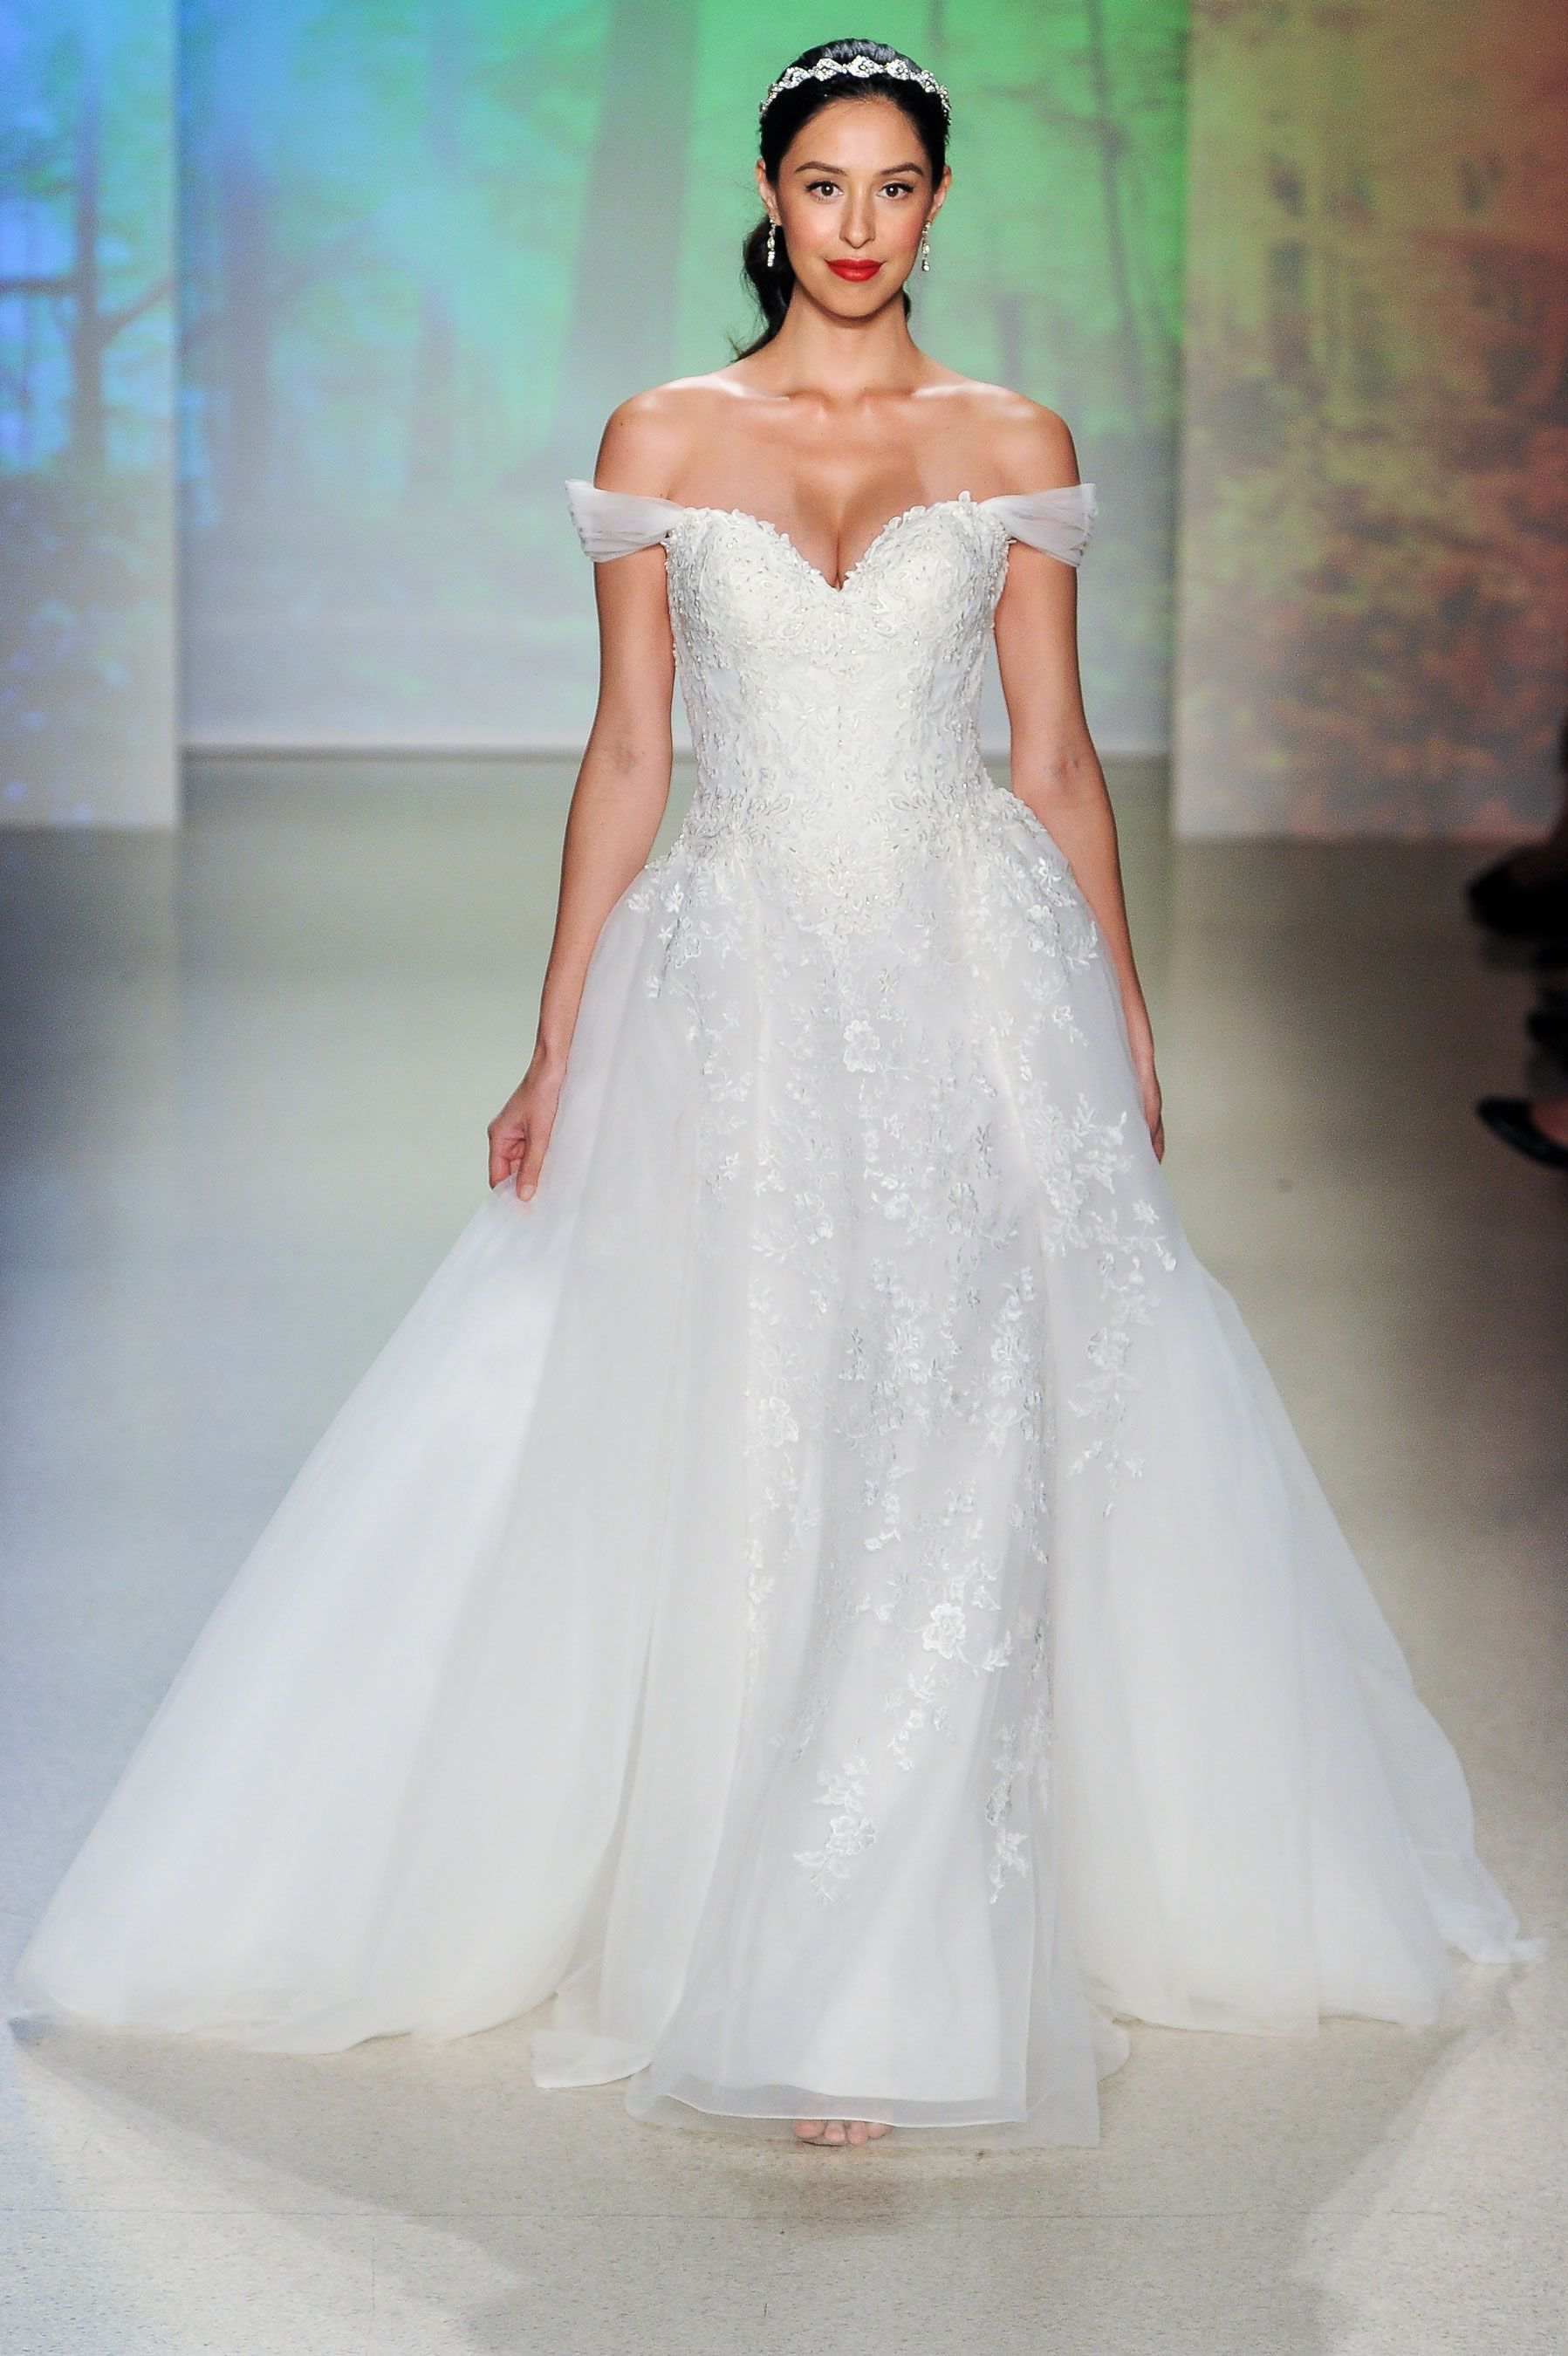 An off the shoulder wedding dress is the next big thing junglespirit Gallery